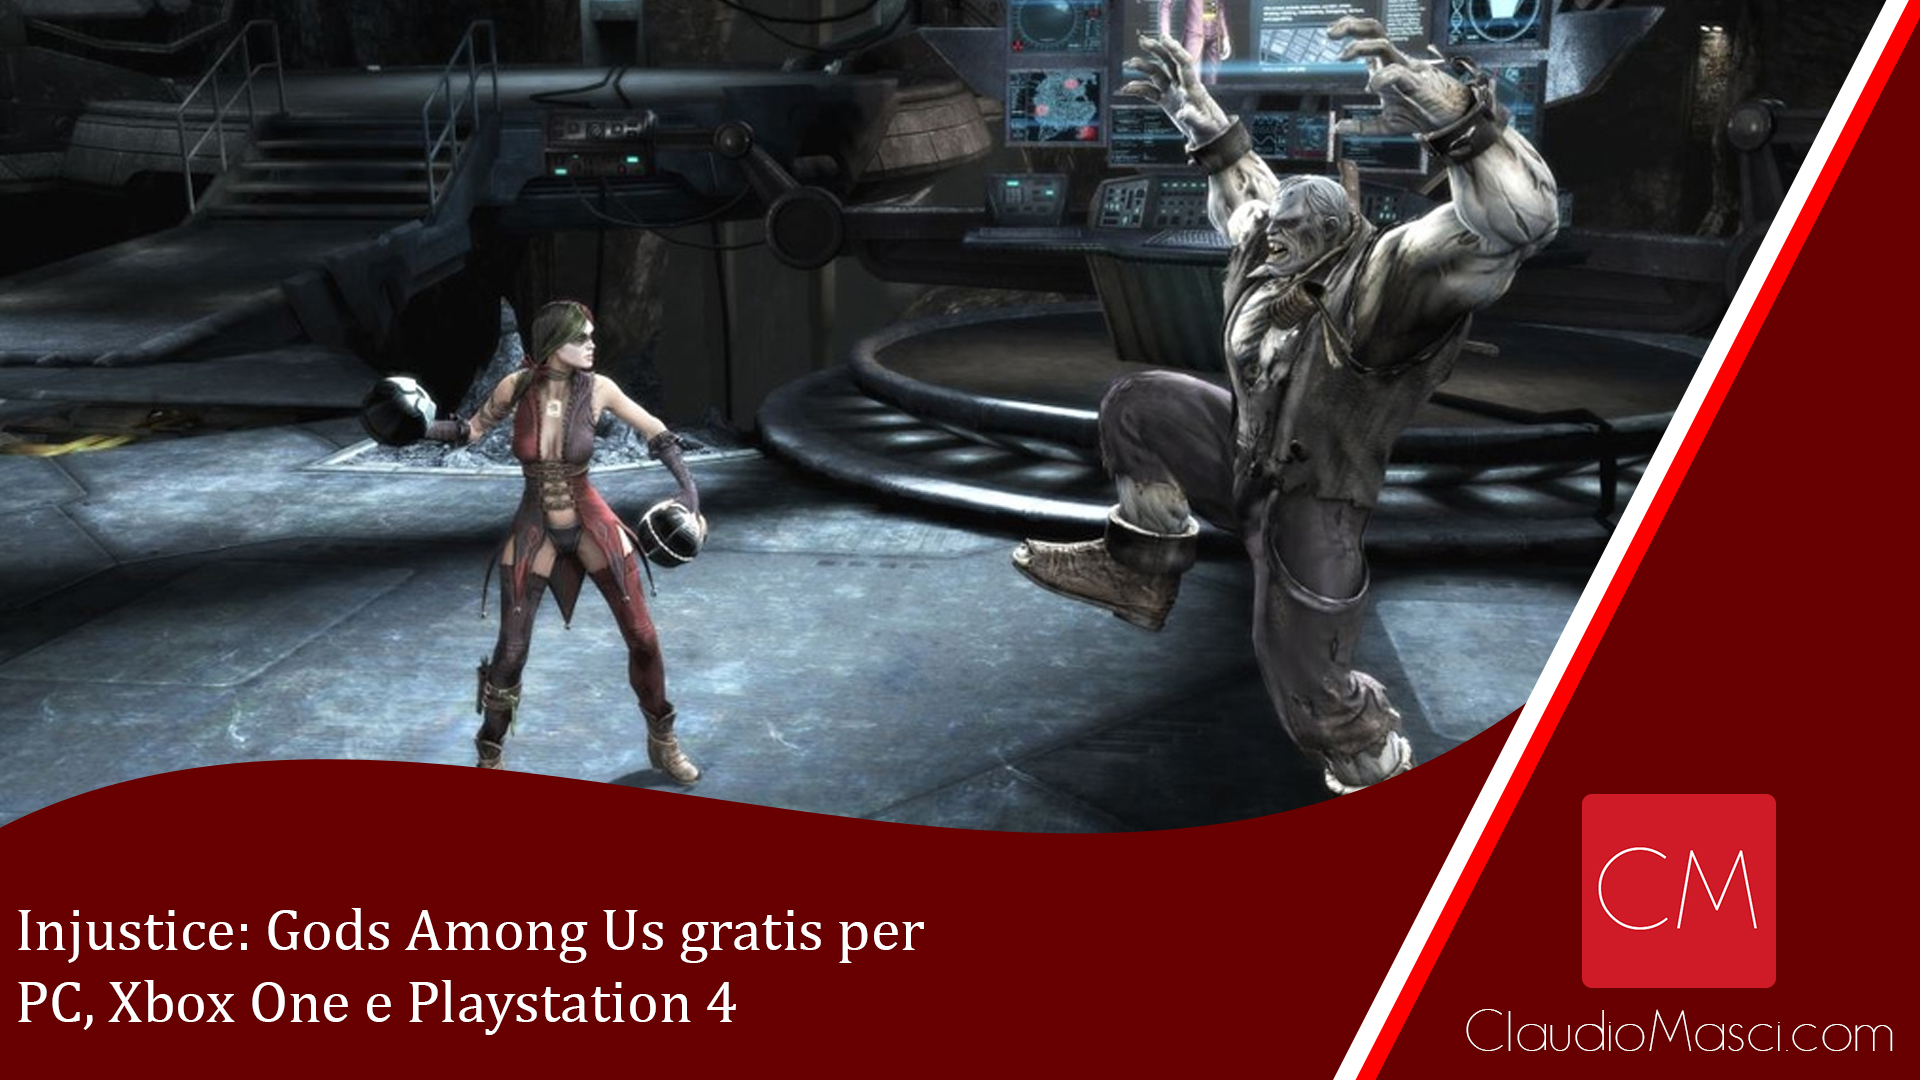 Injustice: Gods Among Us gratis per PC, Xbox One e Playstation 4